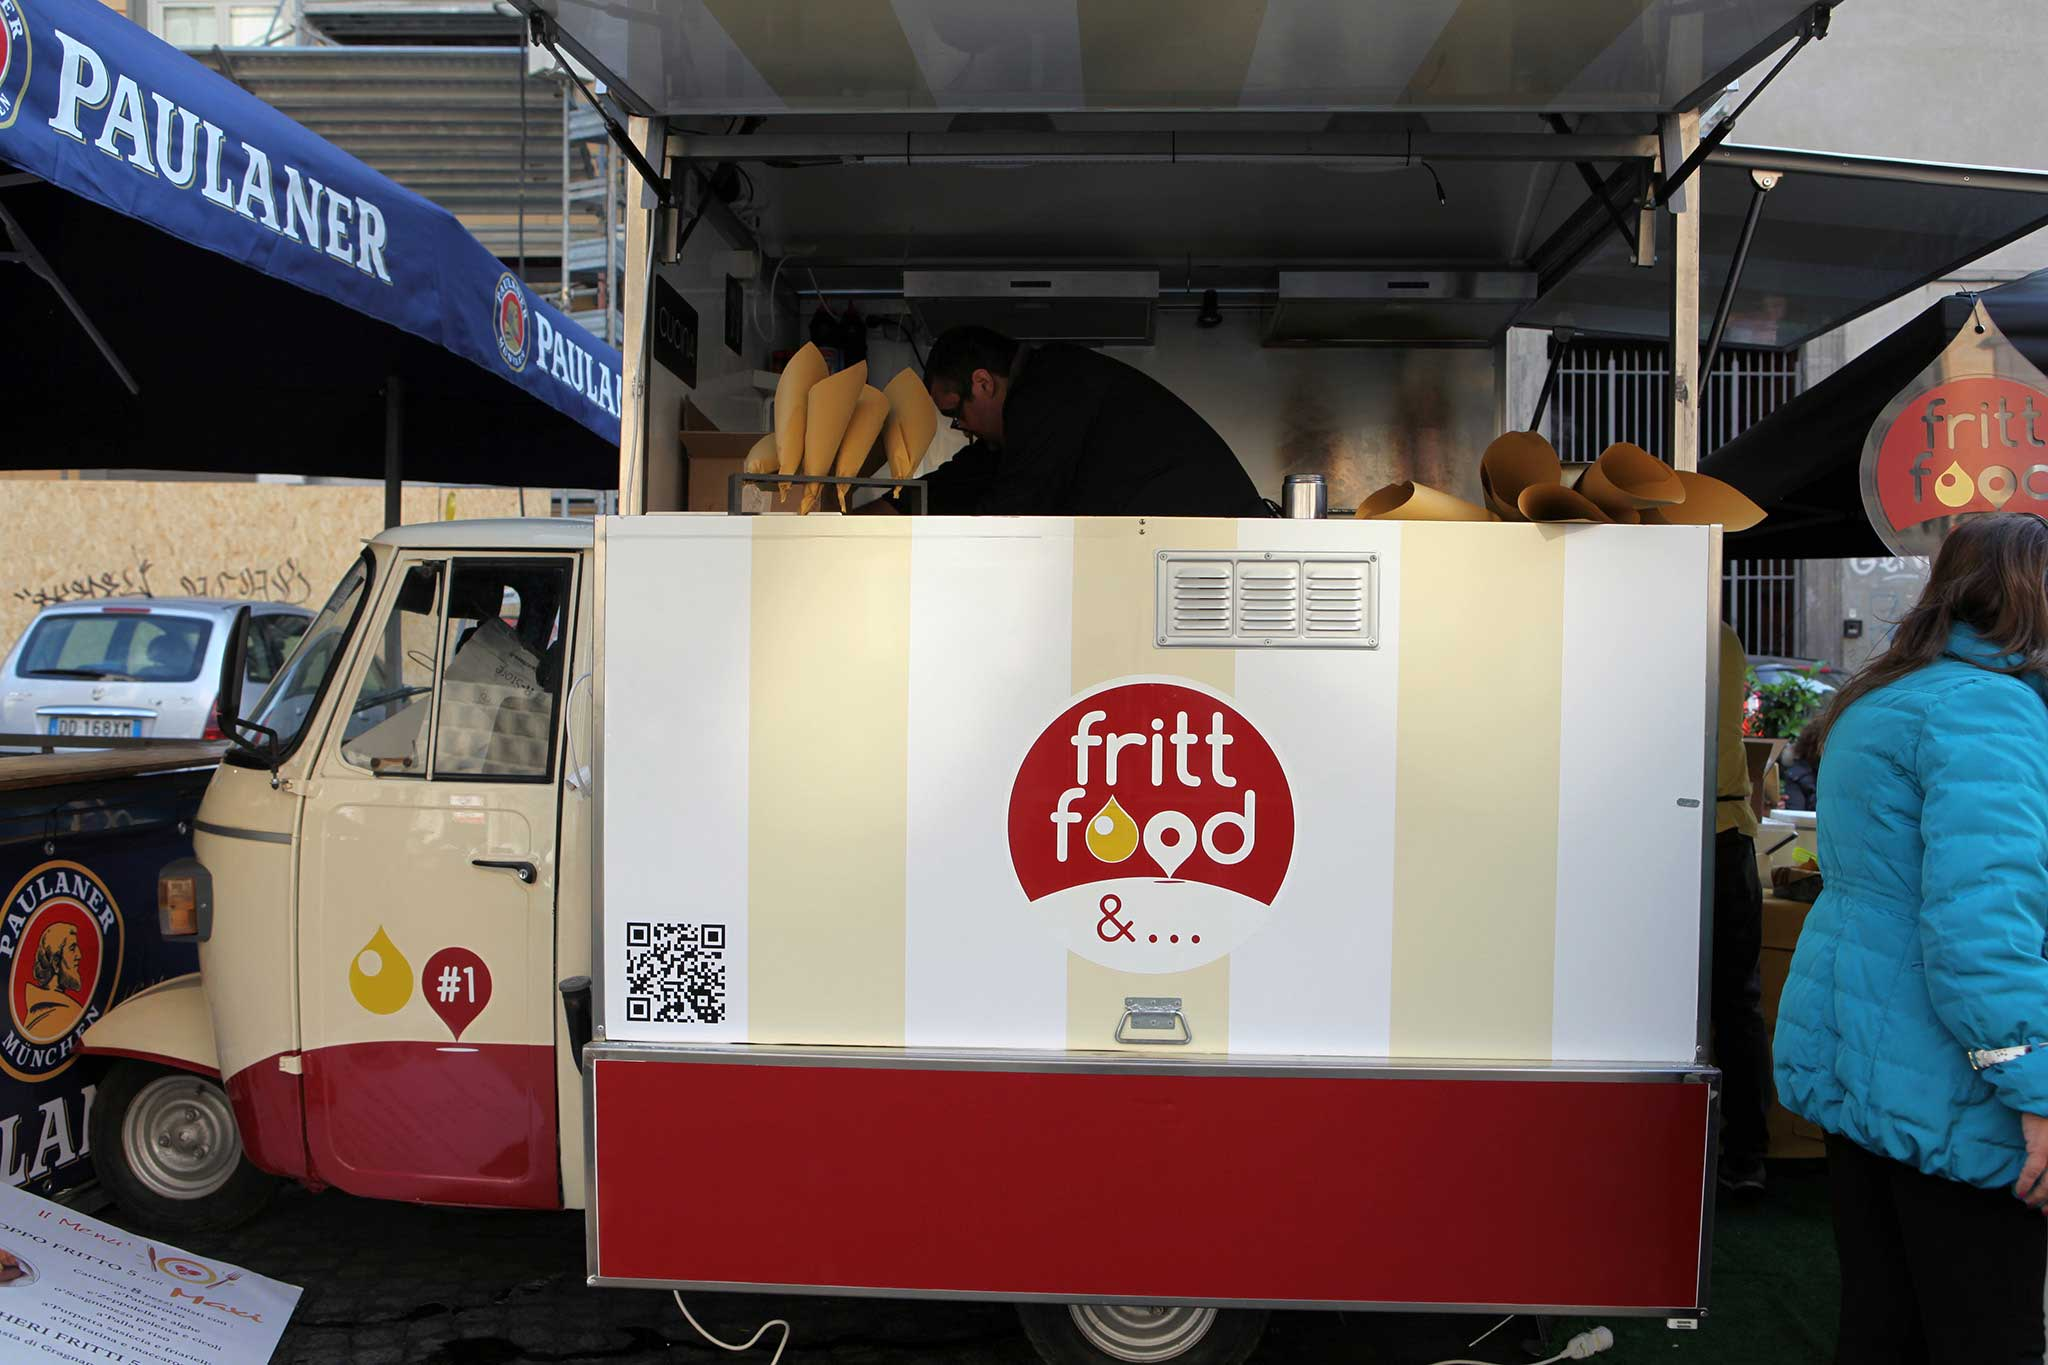 Fritt strit food